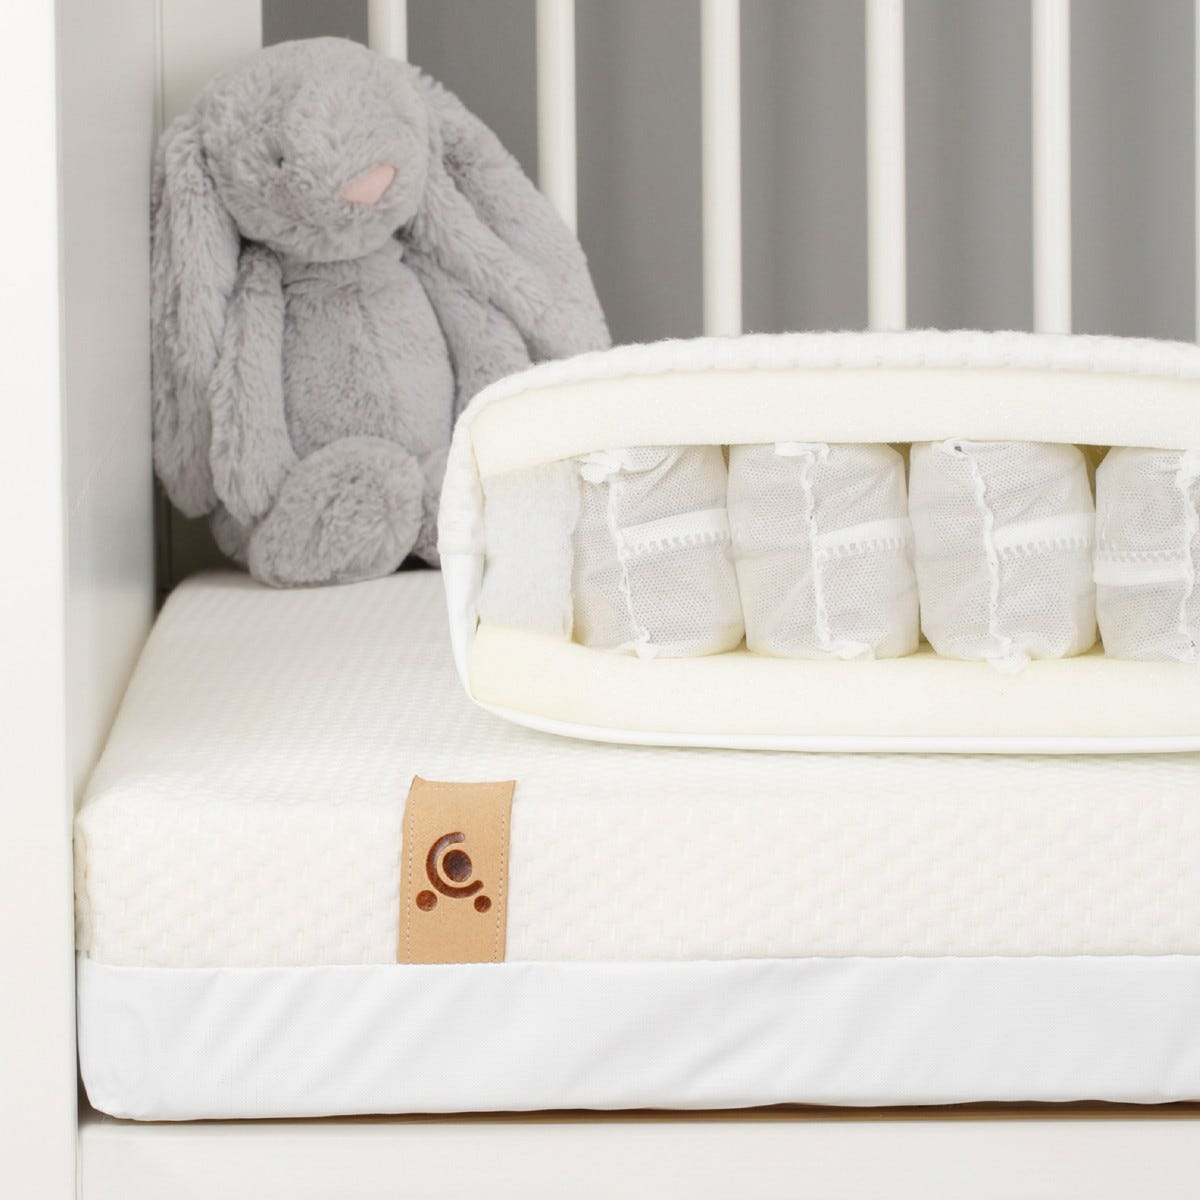 CuddleCo Signature HypoAllergenic Bamboo Pocket Sprung Cot Bed Mattress